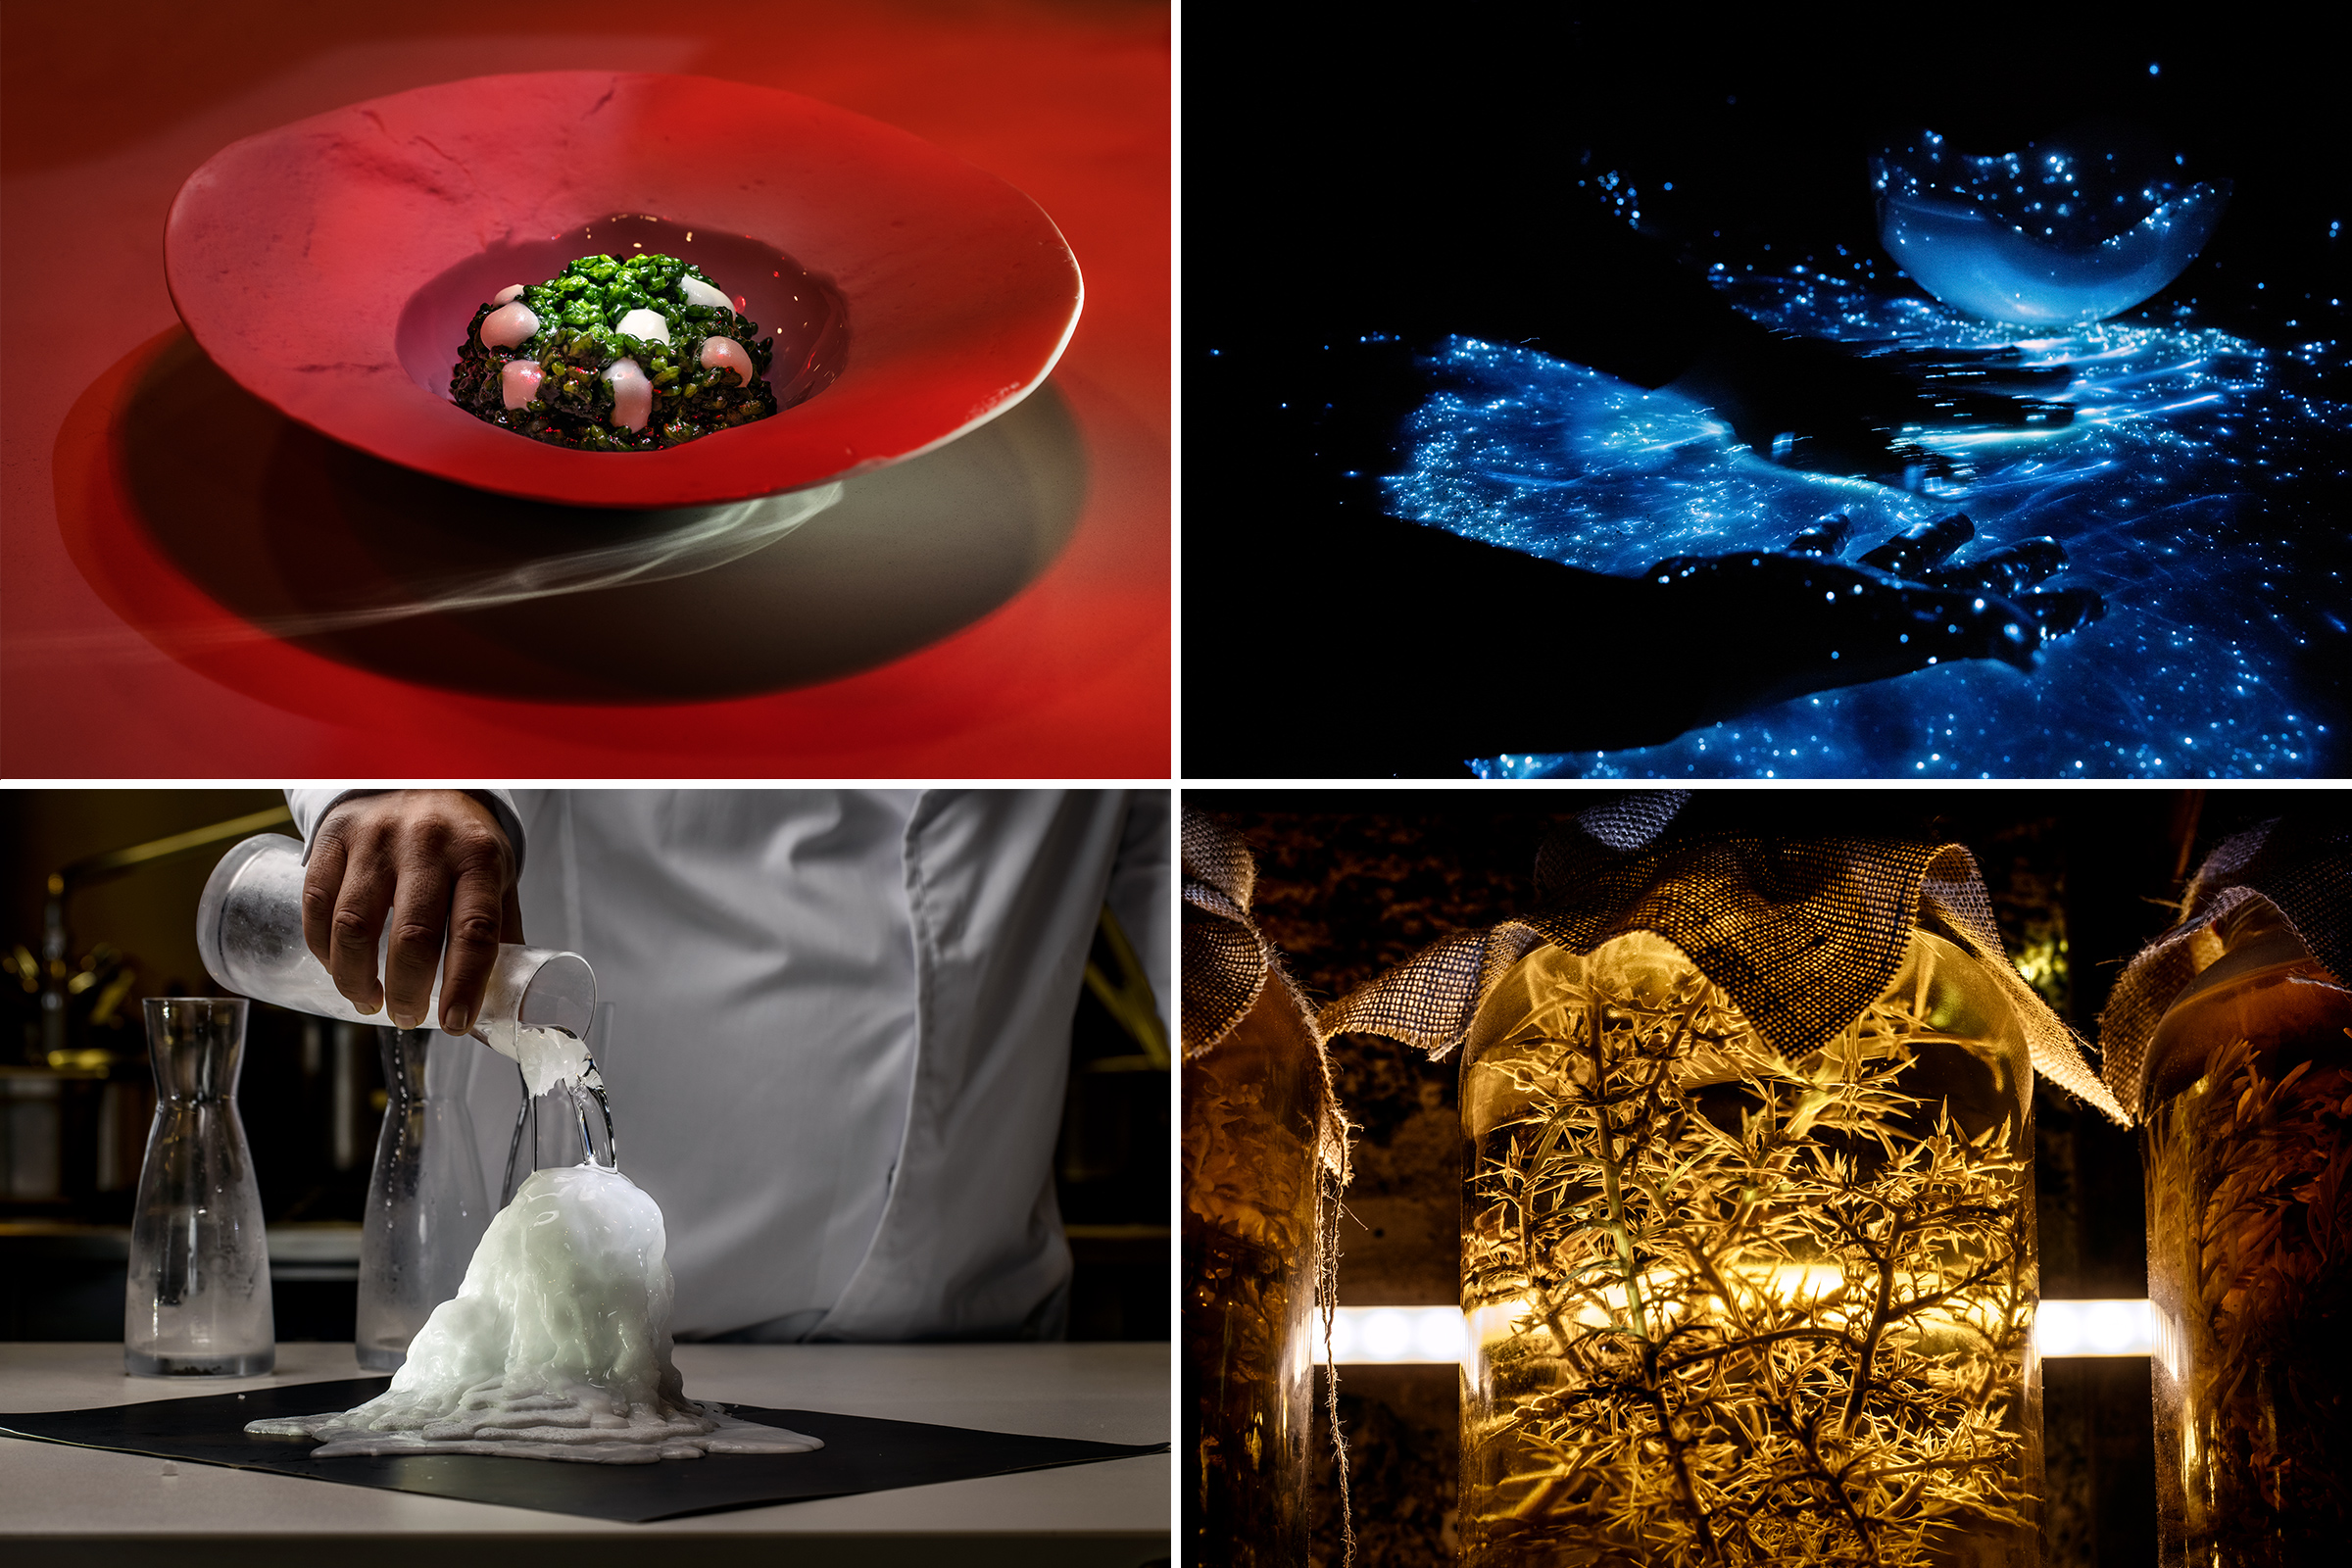 From top left, clockwise: A plankton rice dish at Aponiente; León performs Luz del Mar, mixing two proteins to get fluorescence; a halophyte plant at the restaurant lab; León performs the Sal viva technique